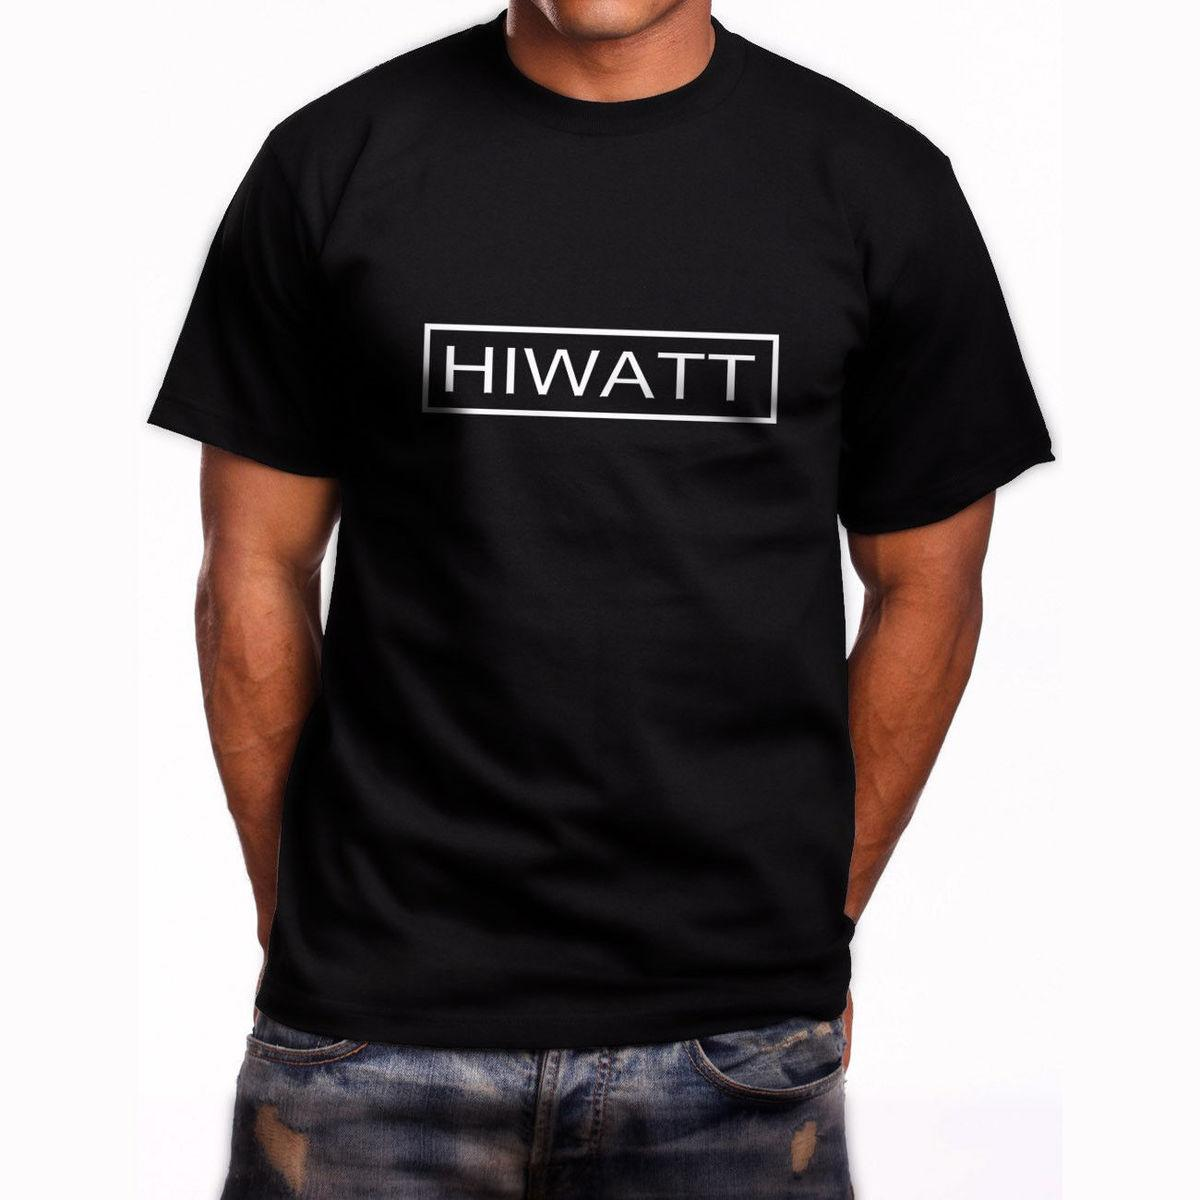 New Hiwatt Guitar Logo Short Sleeve Men/'s Black T-Shirt Size S to 5XL